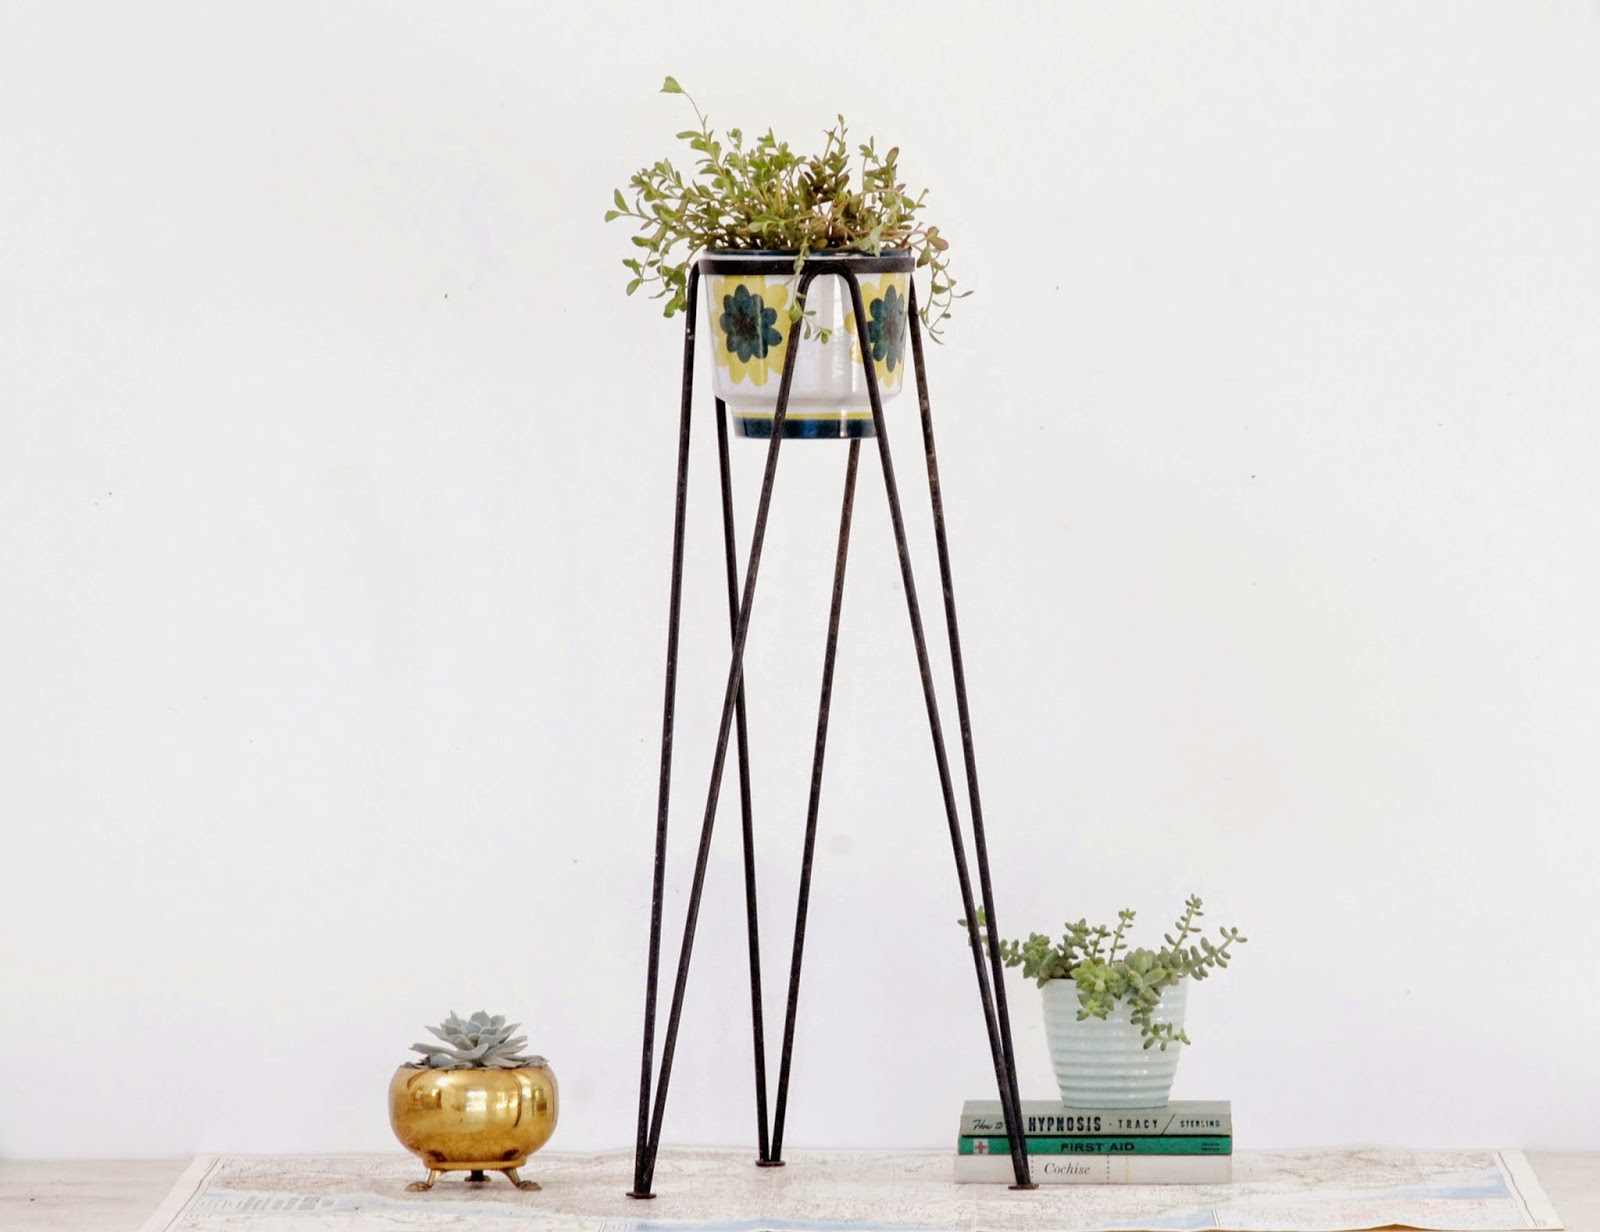 Green Metal Plant Stand Tall Plant Stands Decorative And Functional Tool For